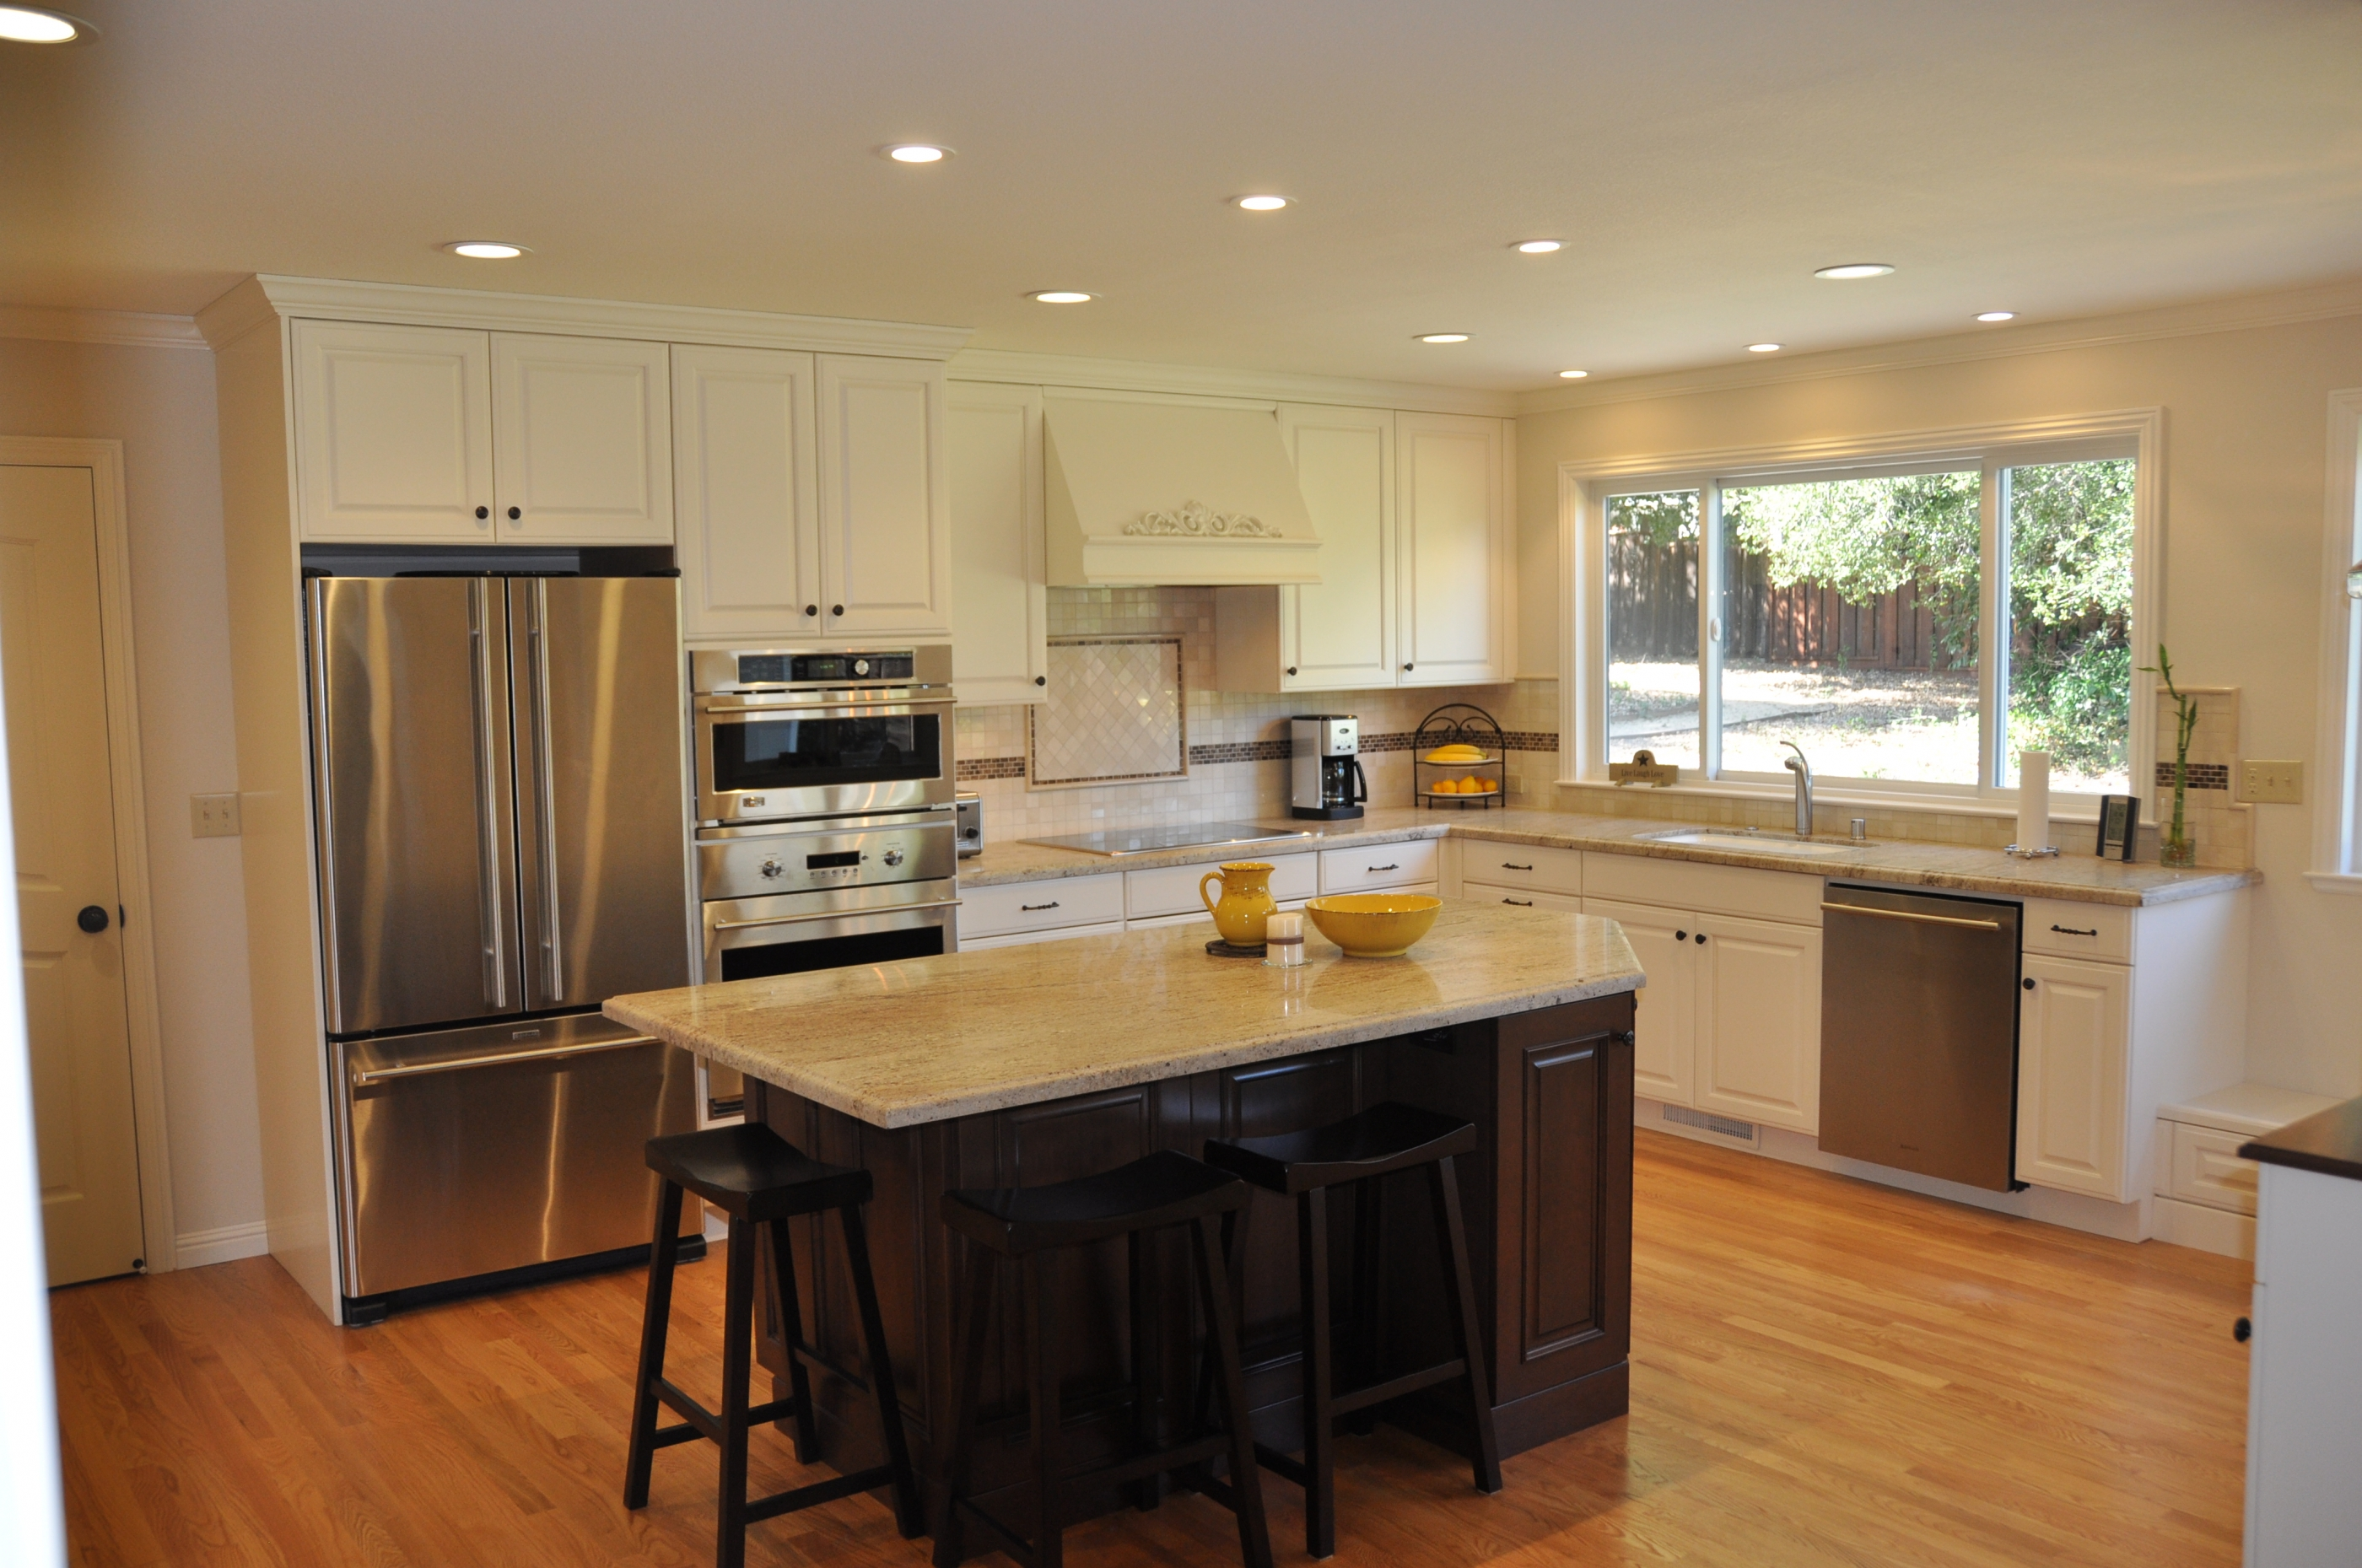 Kitchen, Bathroom & Breakfast Nook - Danville, CA